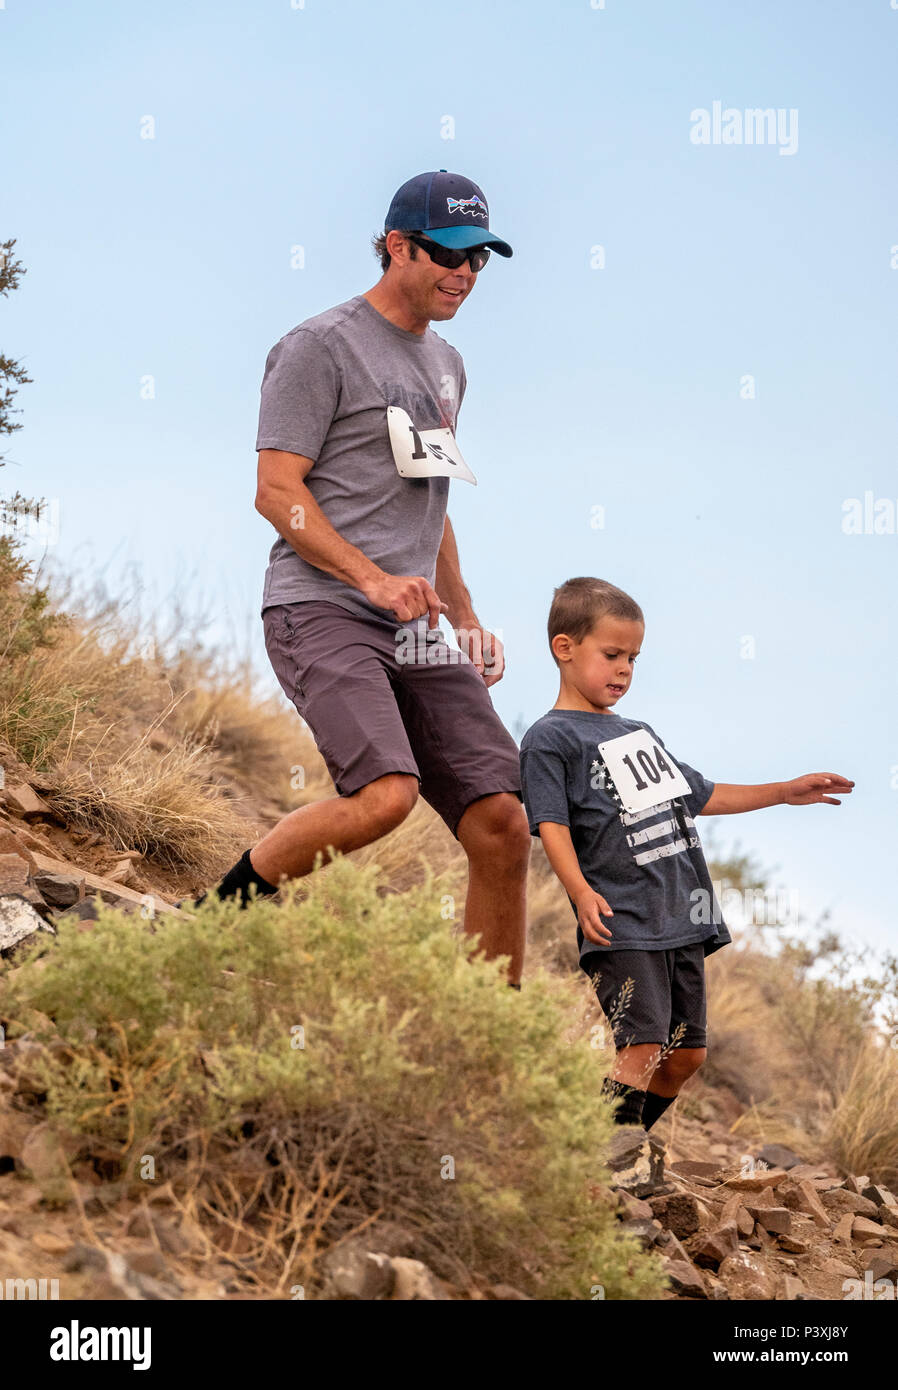 Athletes compete in a foot race and climb up 'S' Mountain (Tenderfoot Mountain) during the annual Fibark Festival; Salida; Colorado; USA - Stock Image